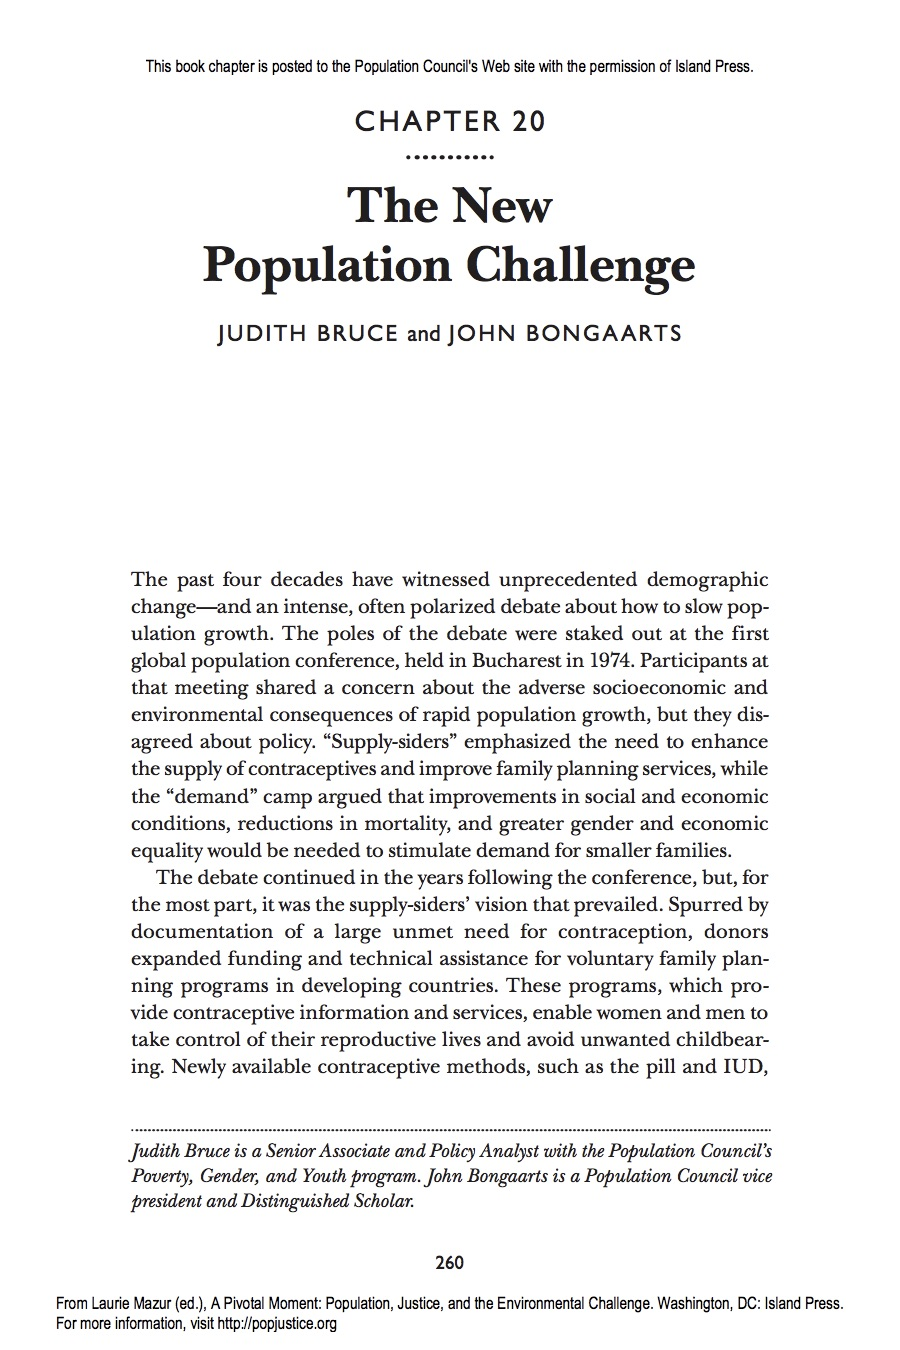 The New Population Challenge